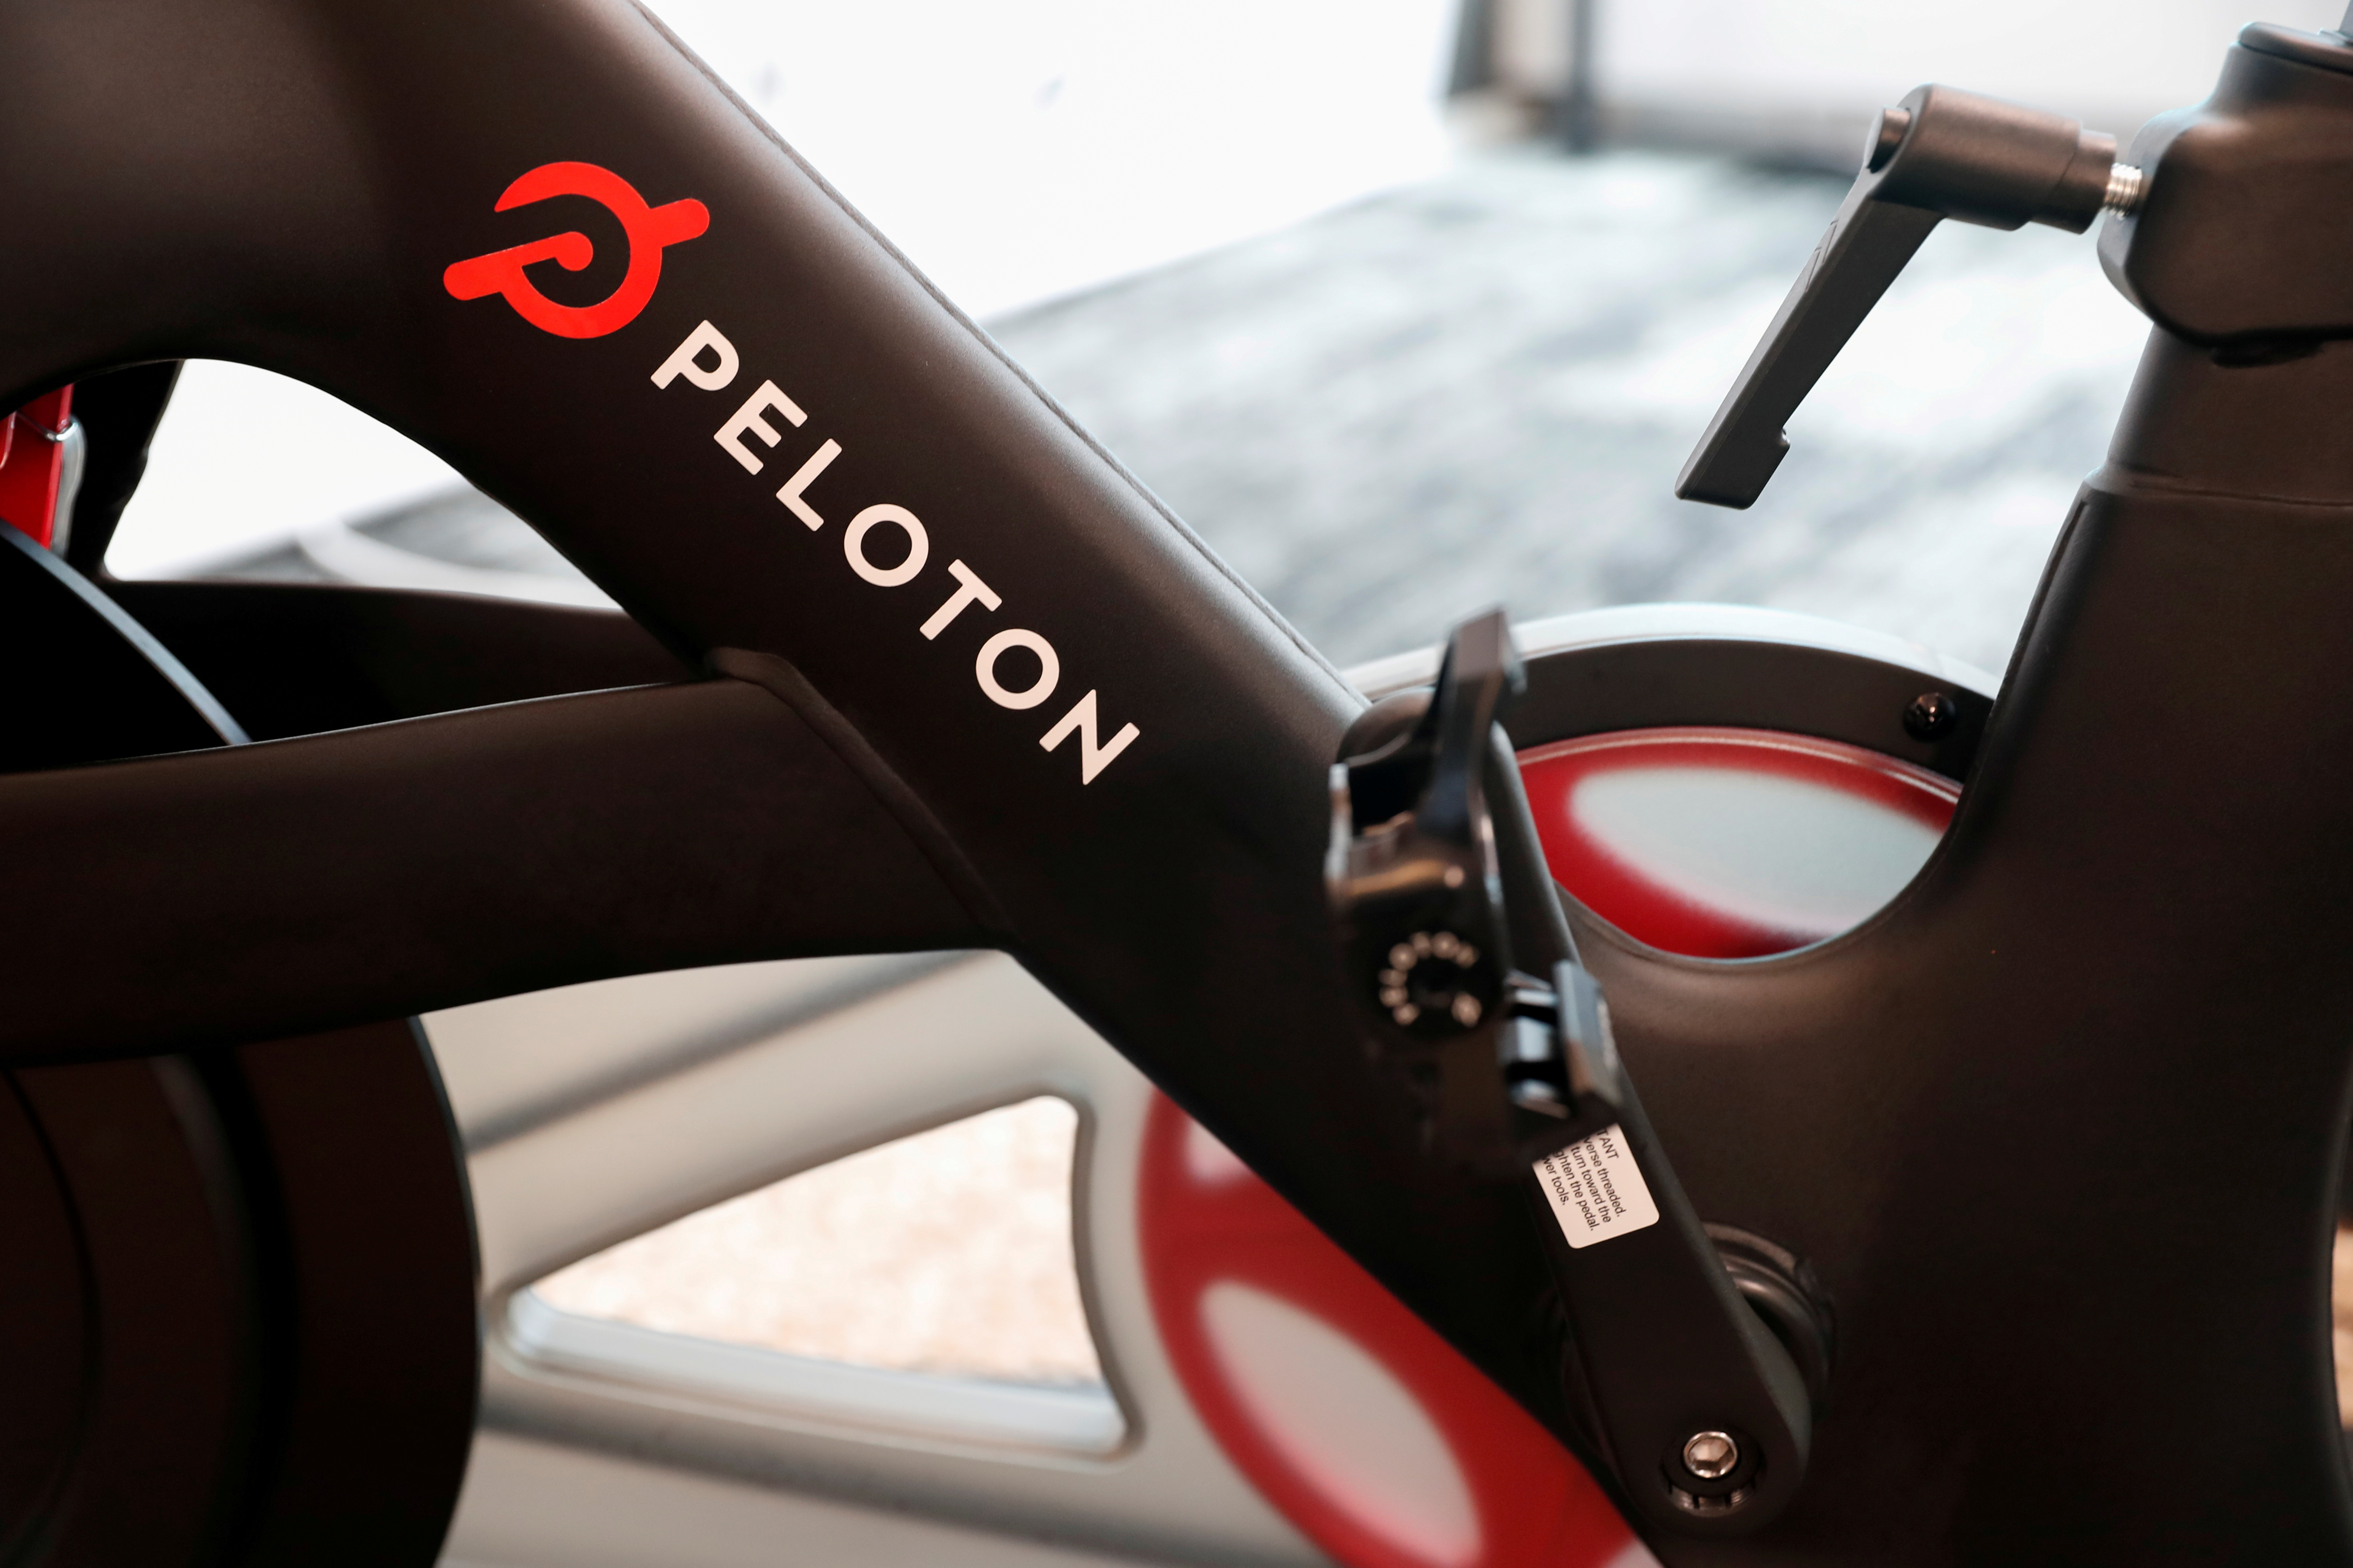 A Peloton exercise bike is seen after the ringing of the opening bell for the company's IPO at the Nasdaq Market site in New York City, September 26, 2019. REUTERS/Shannon Stapleton